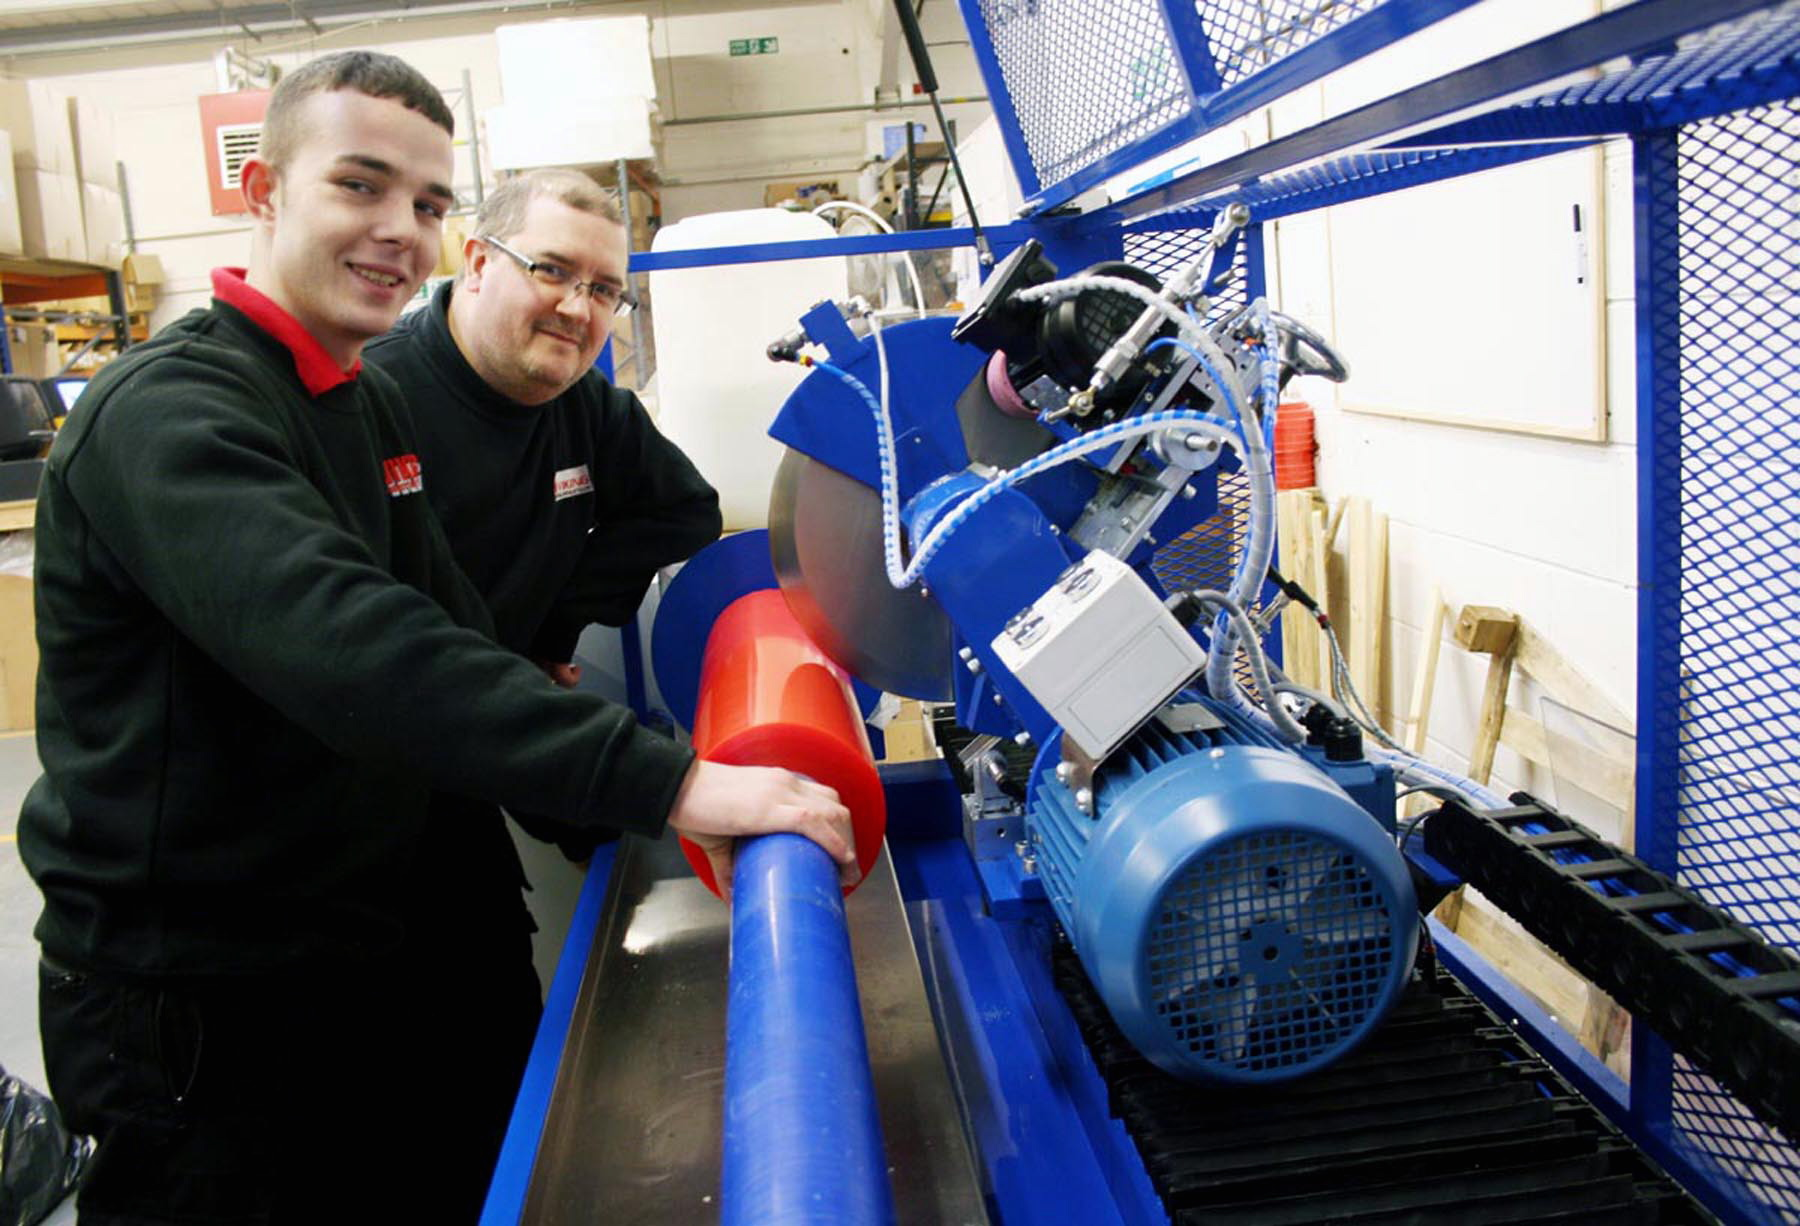 Viking's new apprentice Luke Summers, left, at work on the firm's new slitting machine under the guidance of Darren Milner